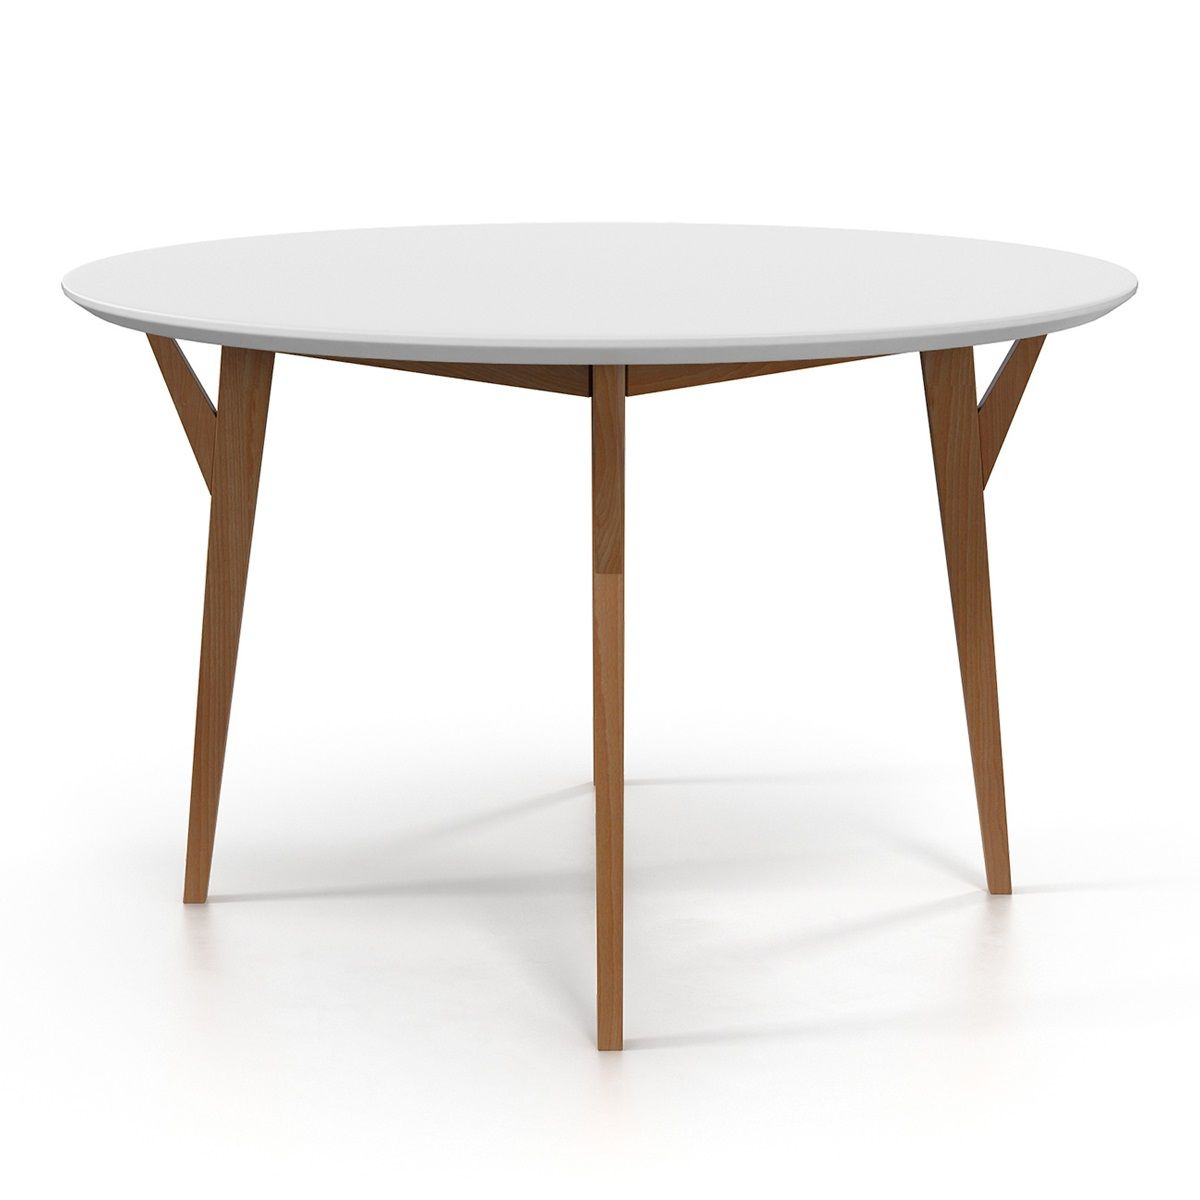 Eco Natura Anja Round Dining Table Round Dining Table Dining